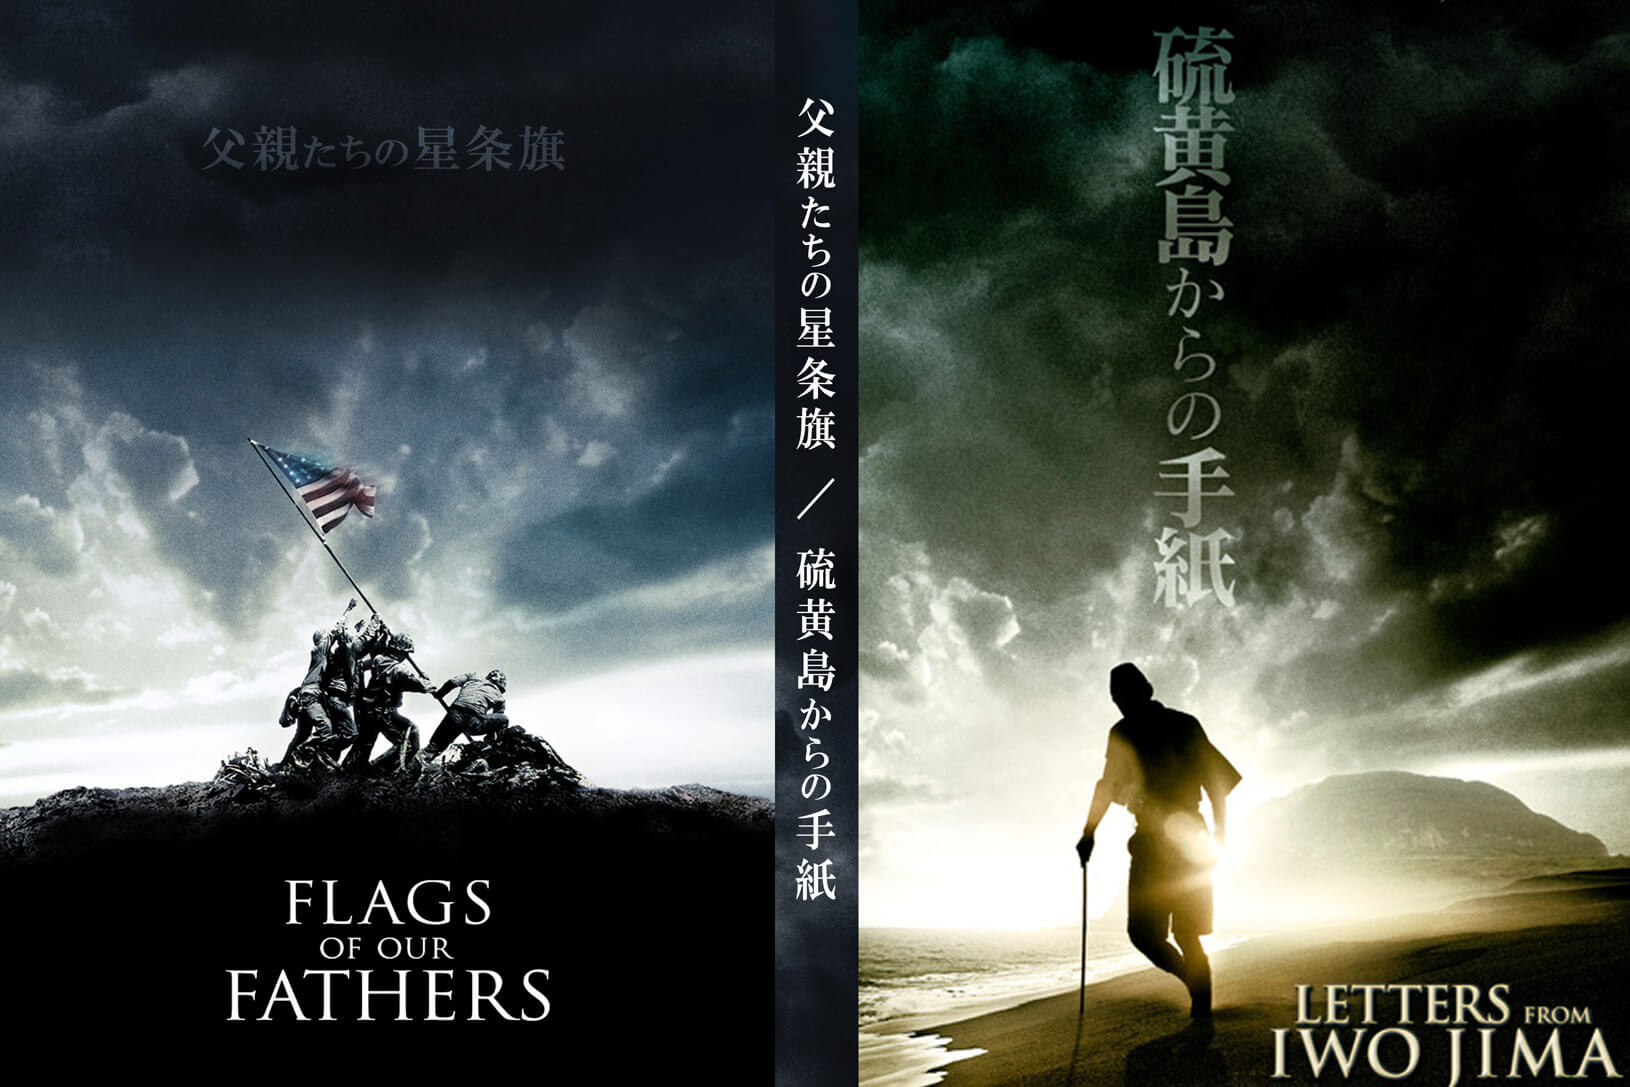 Flags-of-Our-Fathers_letter-from-iojima.jpg